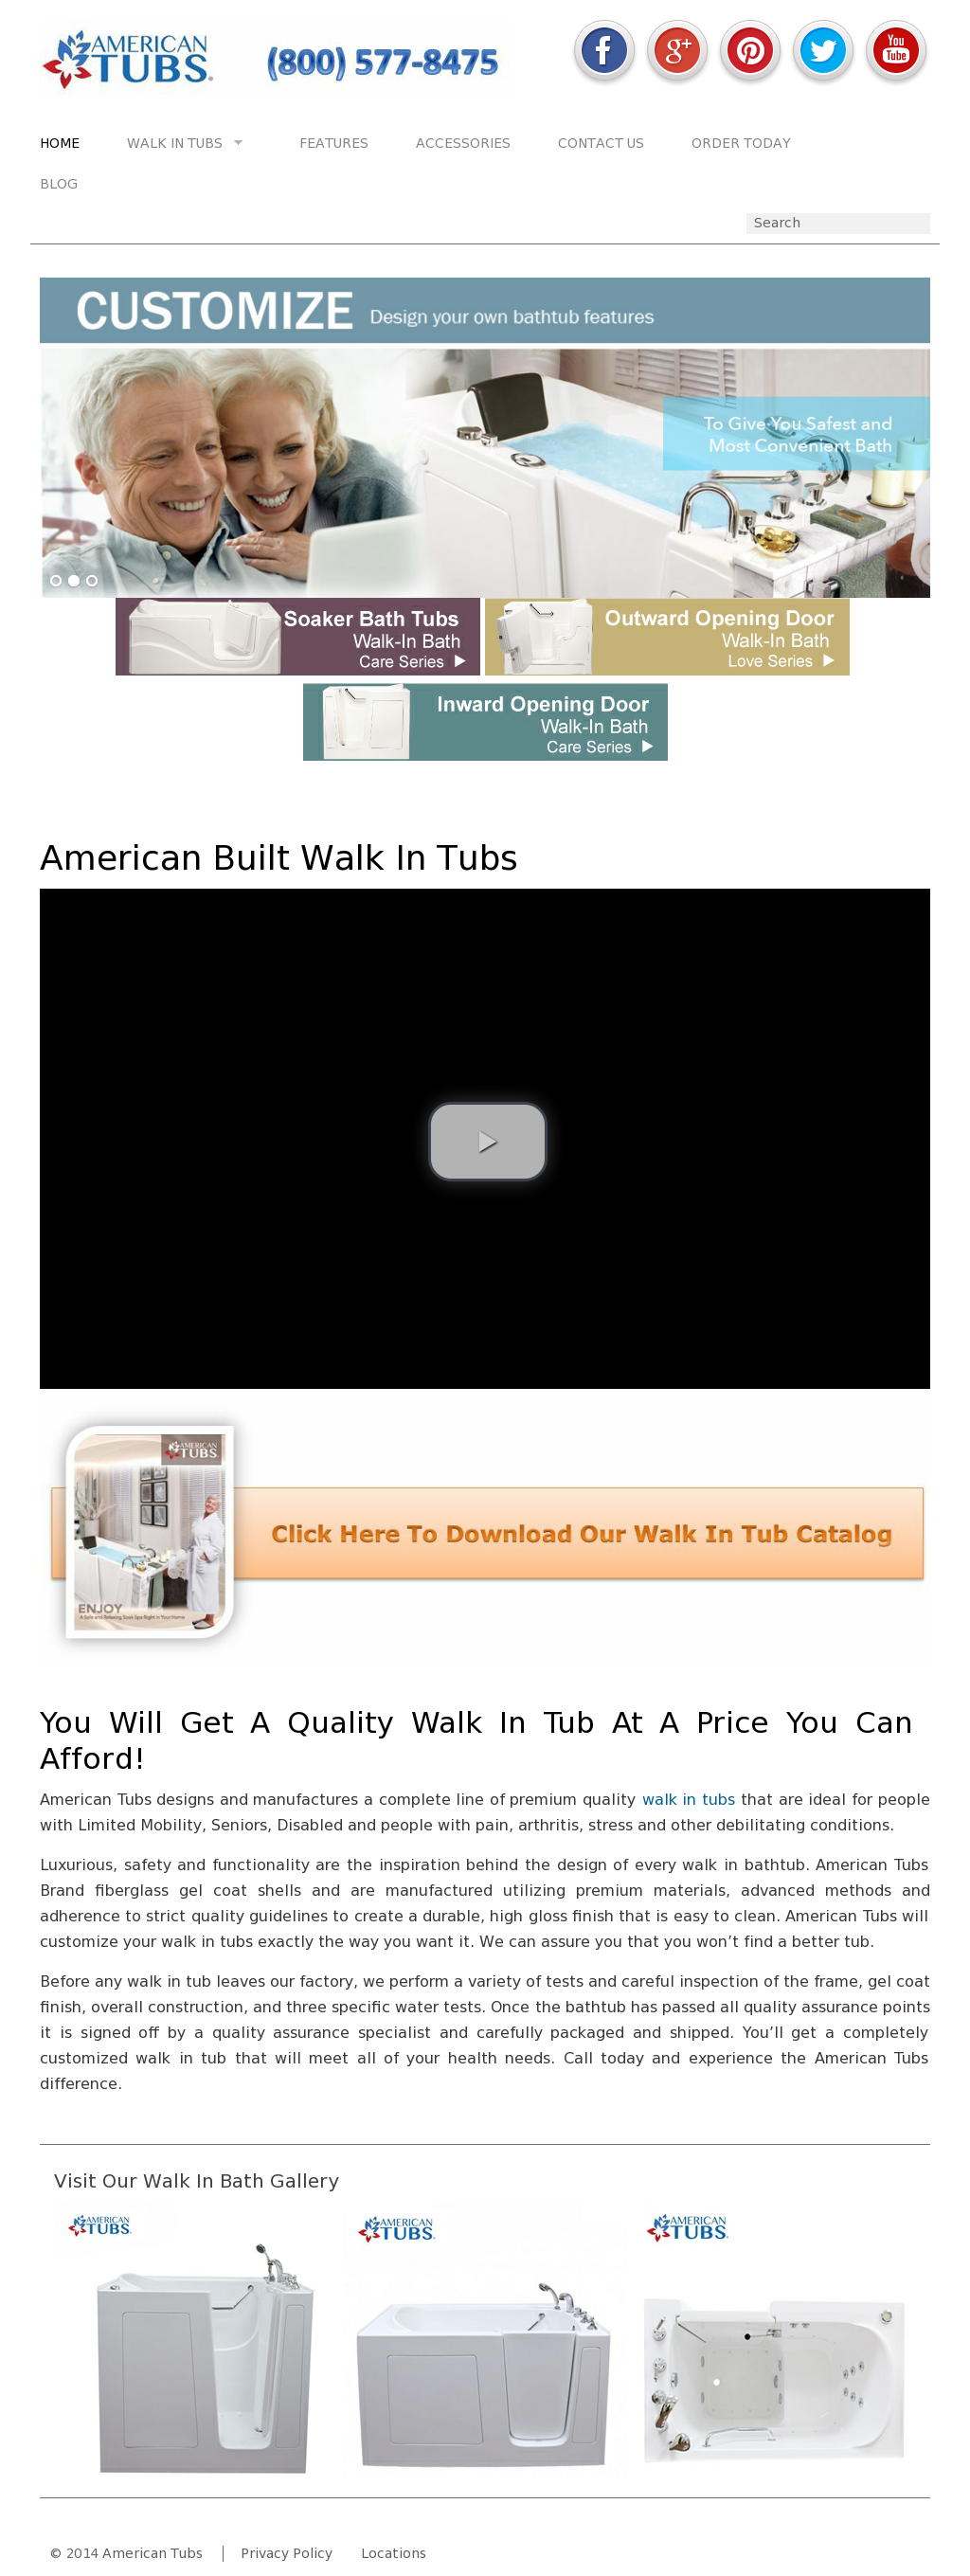 American Tubs Competitors, Revenue and Employees - Owler Company Profile